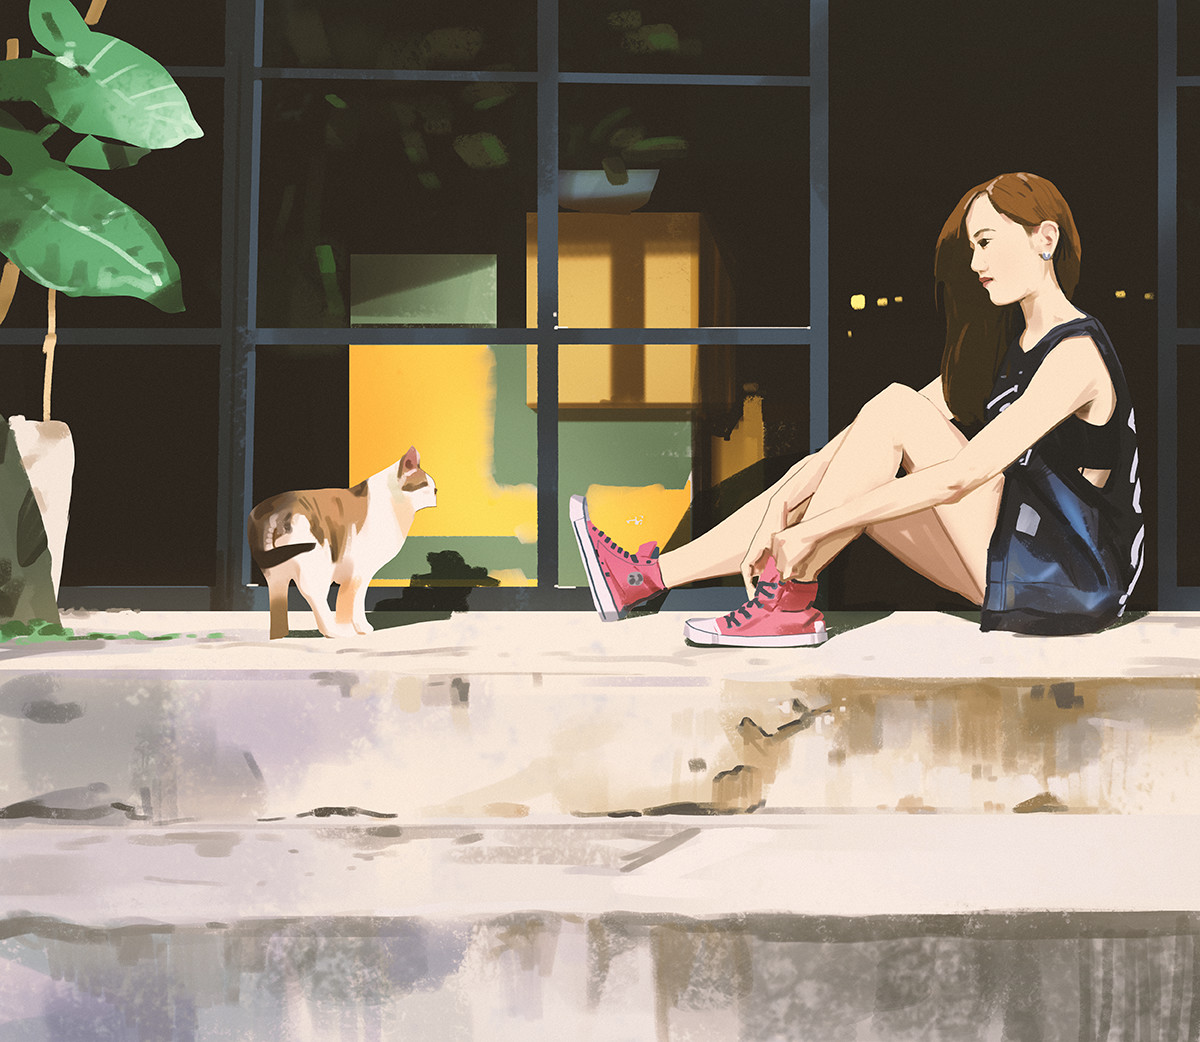 Sketch collection 5 2018 Pink Shoes, Atey Ghailan_03